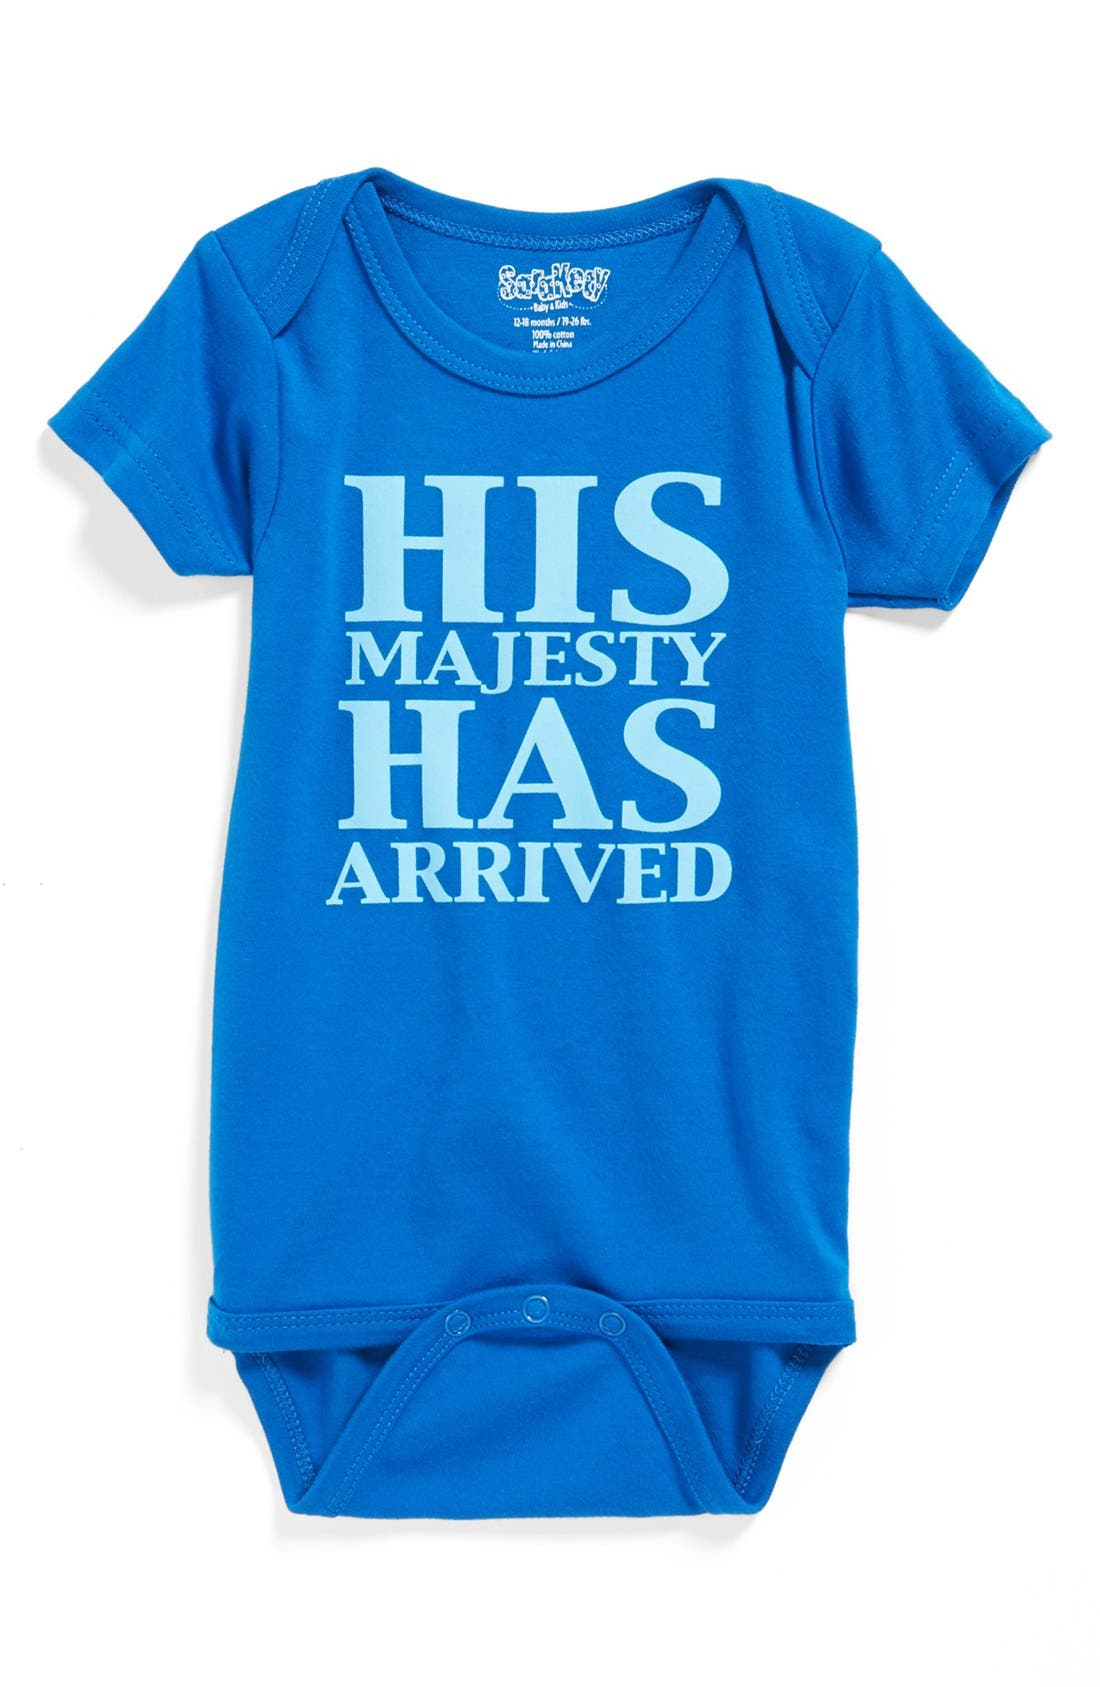 'His Majesty Has Arrived' Bodysuit,                             Main thumbnail 1, color,                             ROYAL BLUE